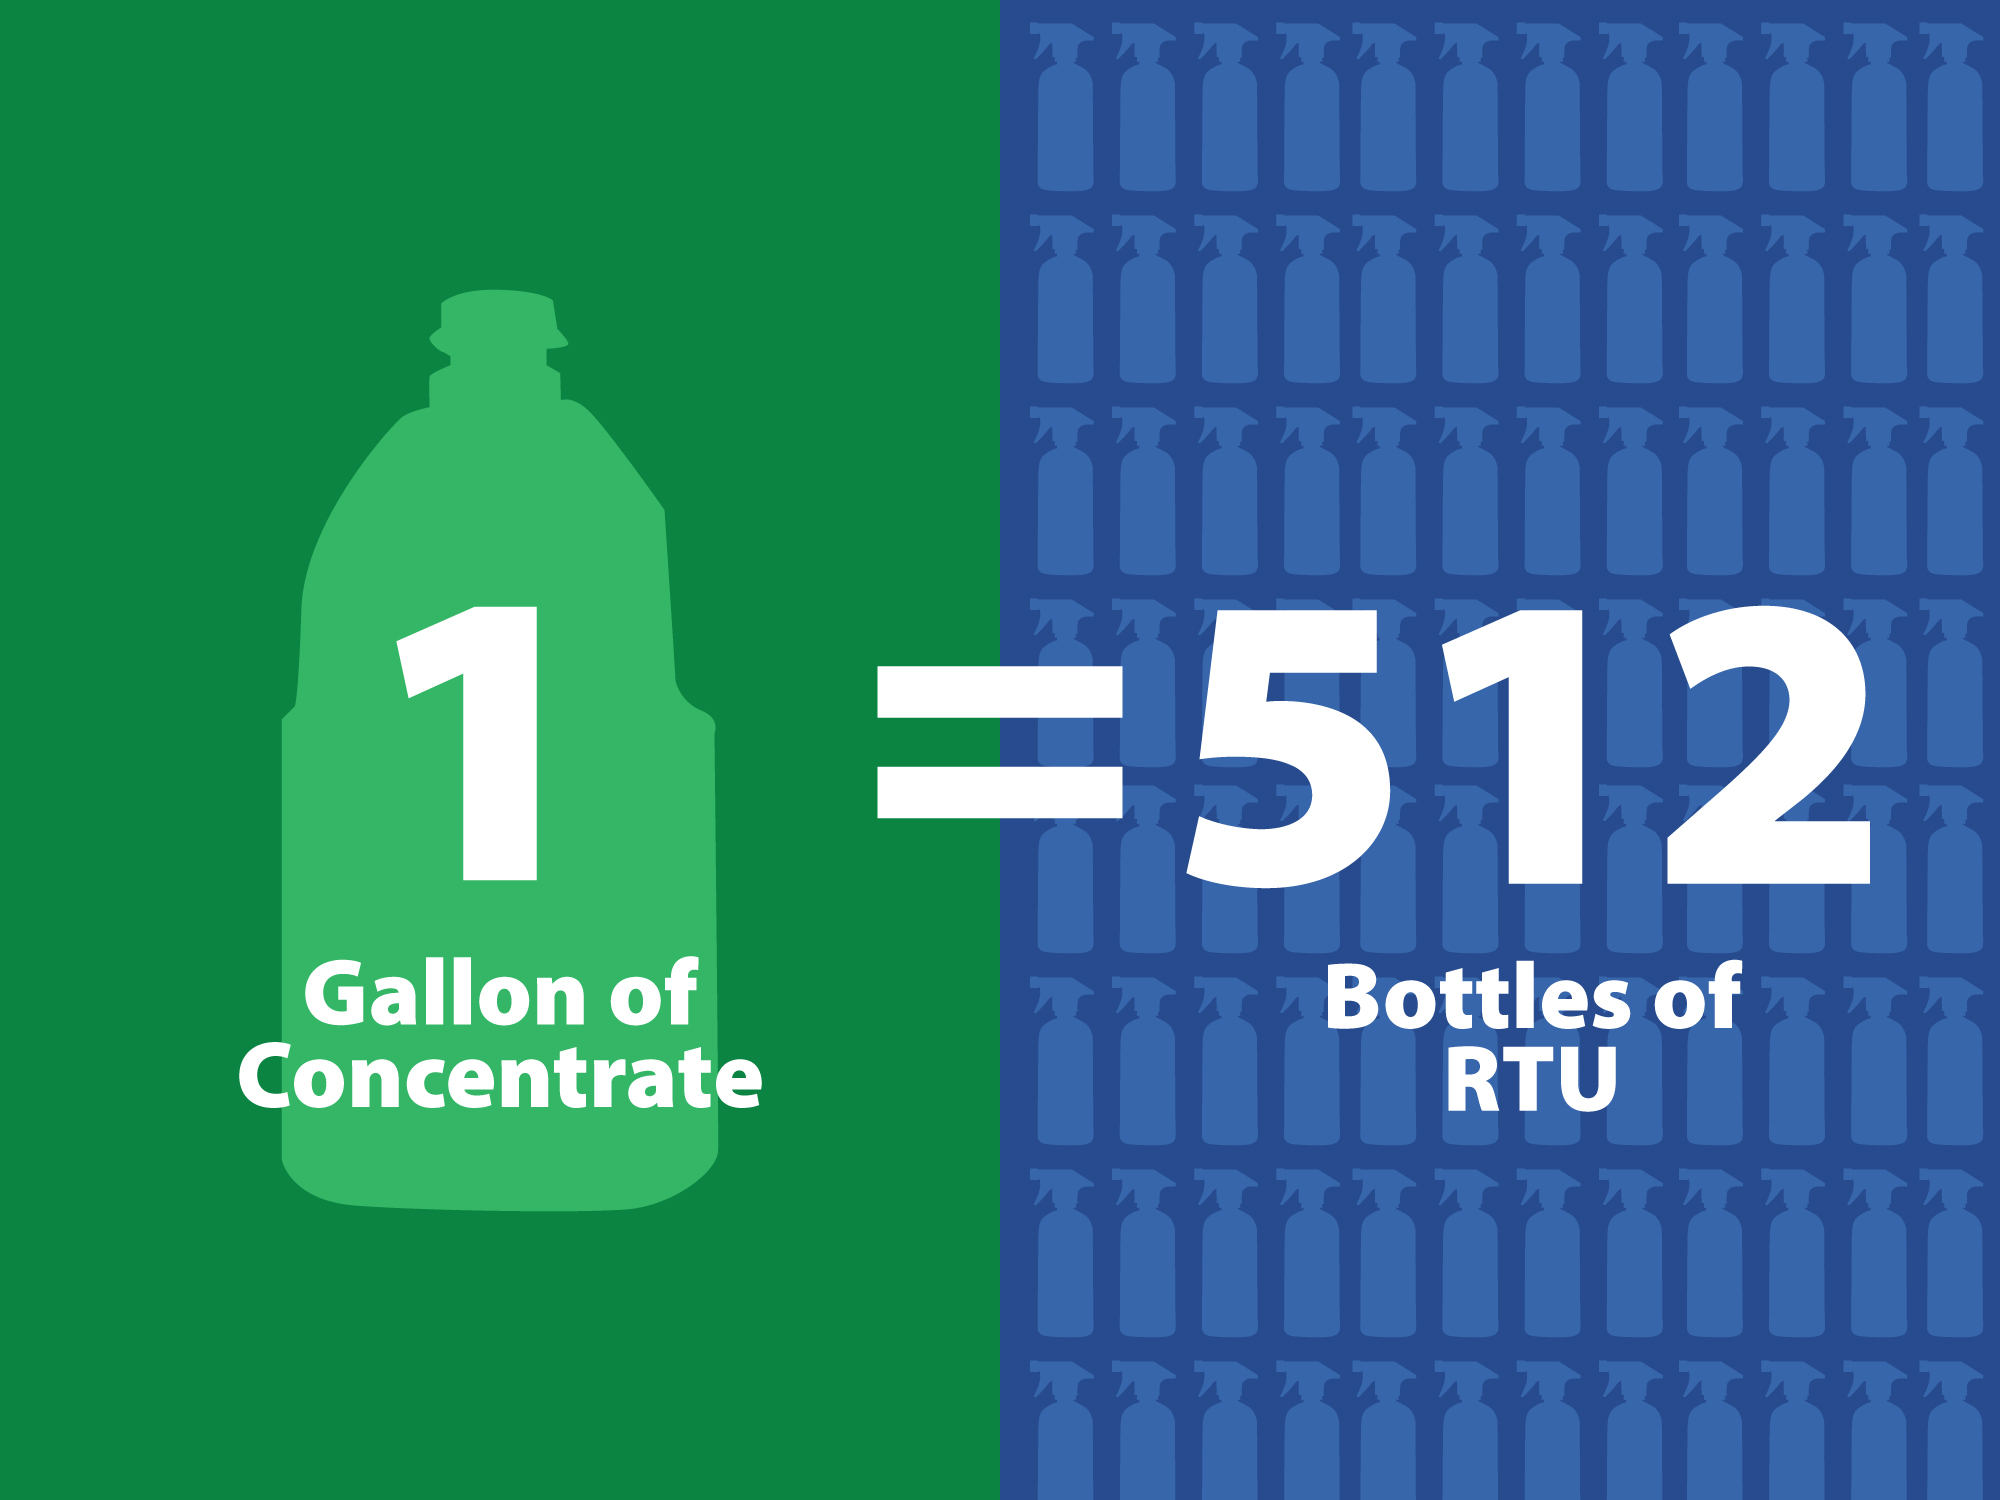 One Gallon of Concentrate Equals 512 Bottles of RTU